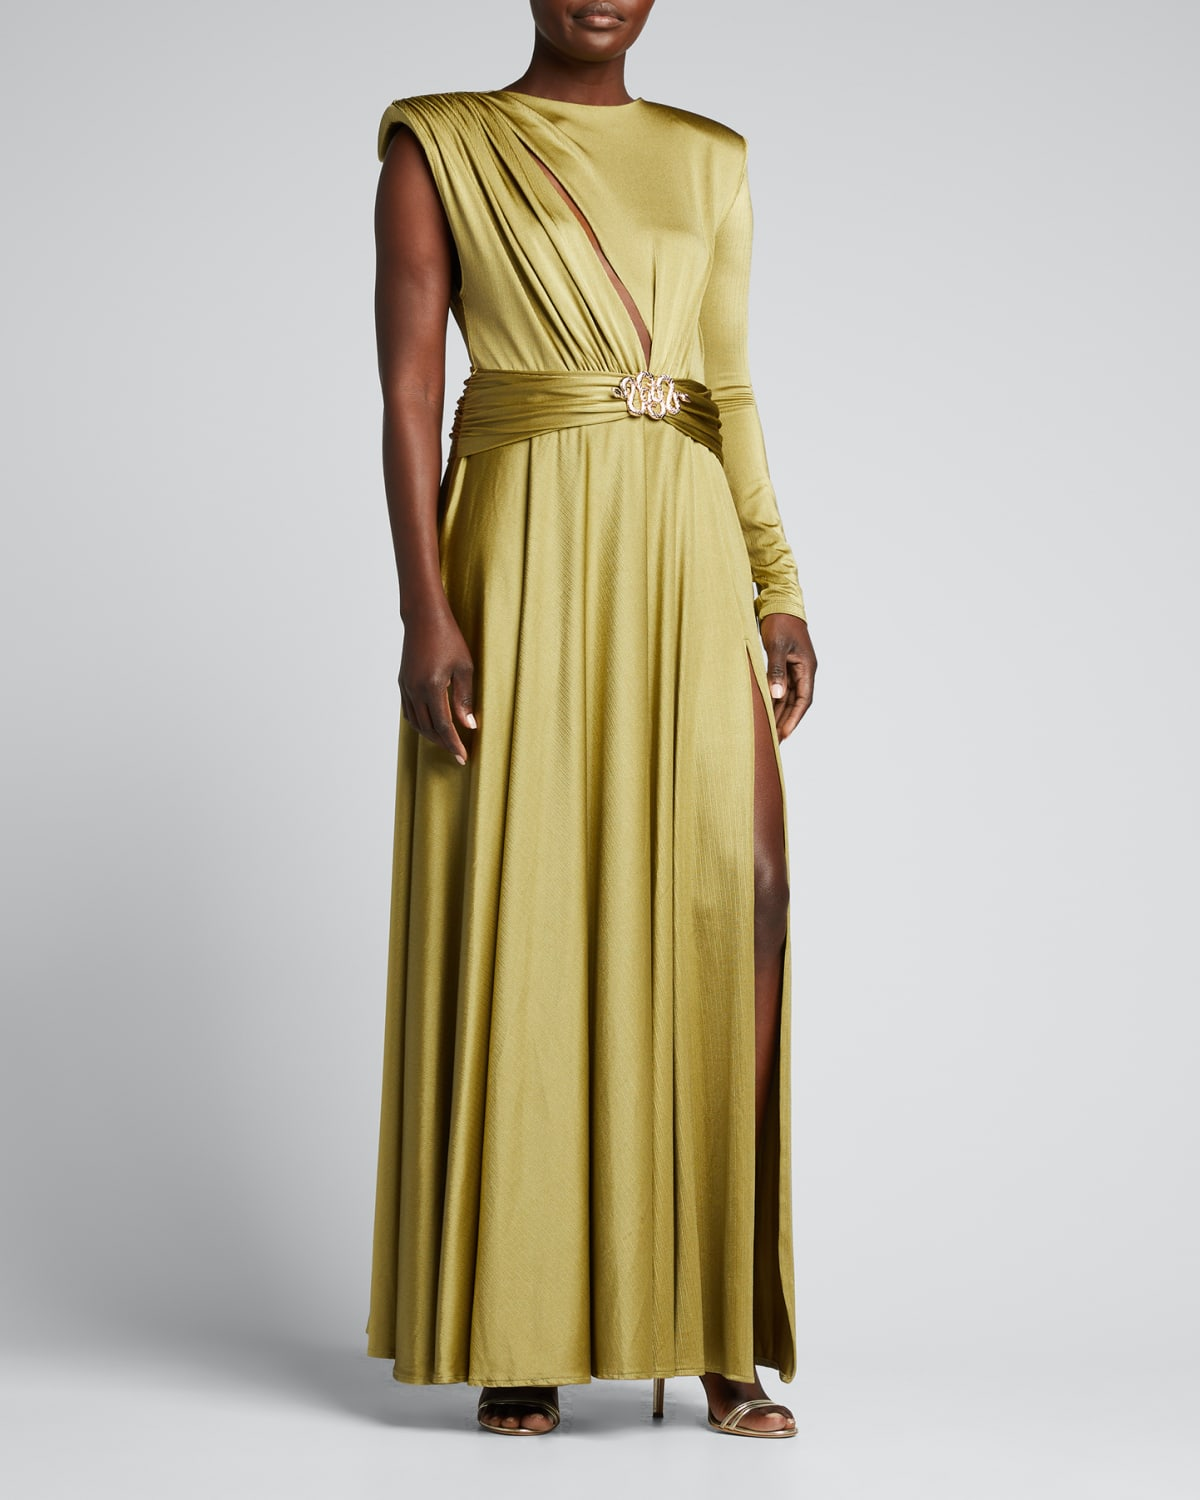 Starlight Olive Asymmetric Gown